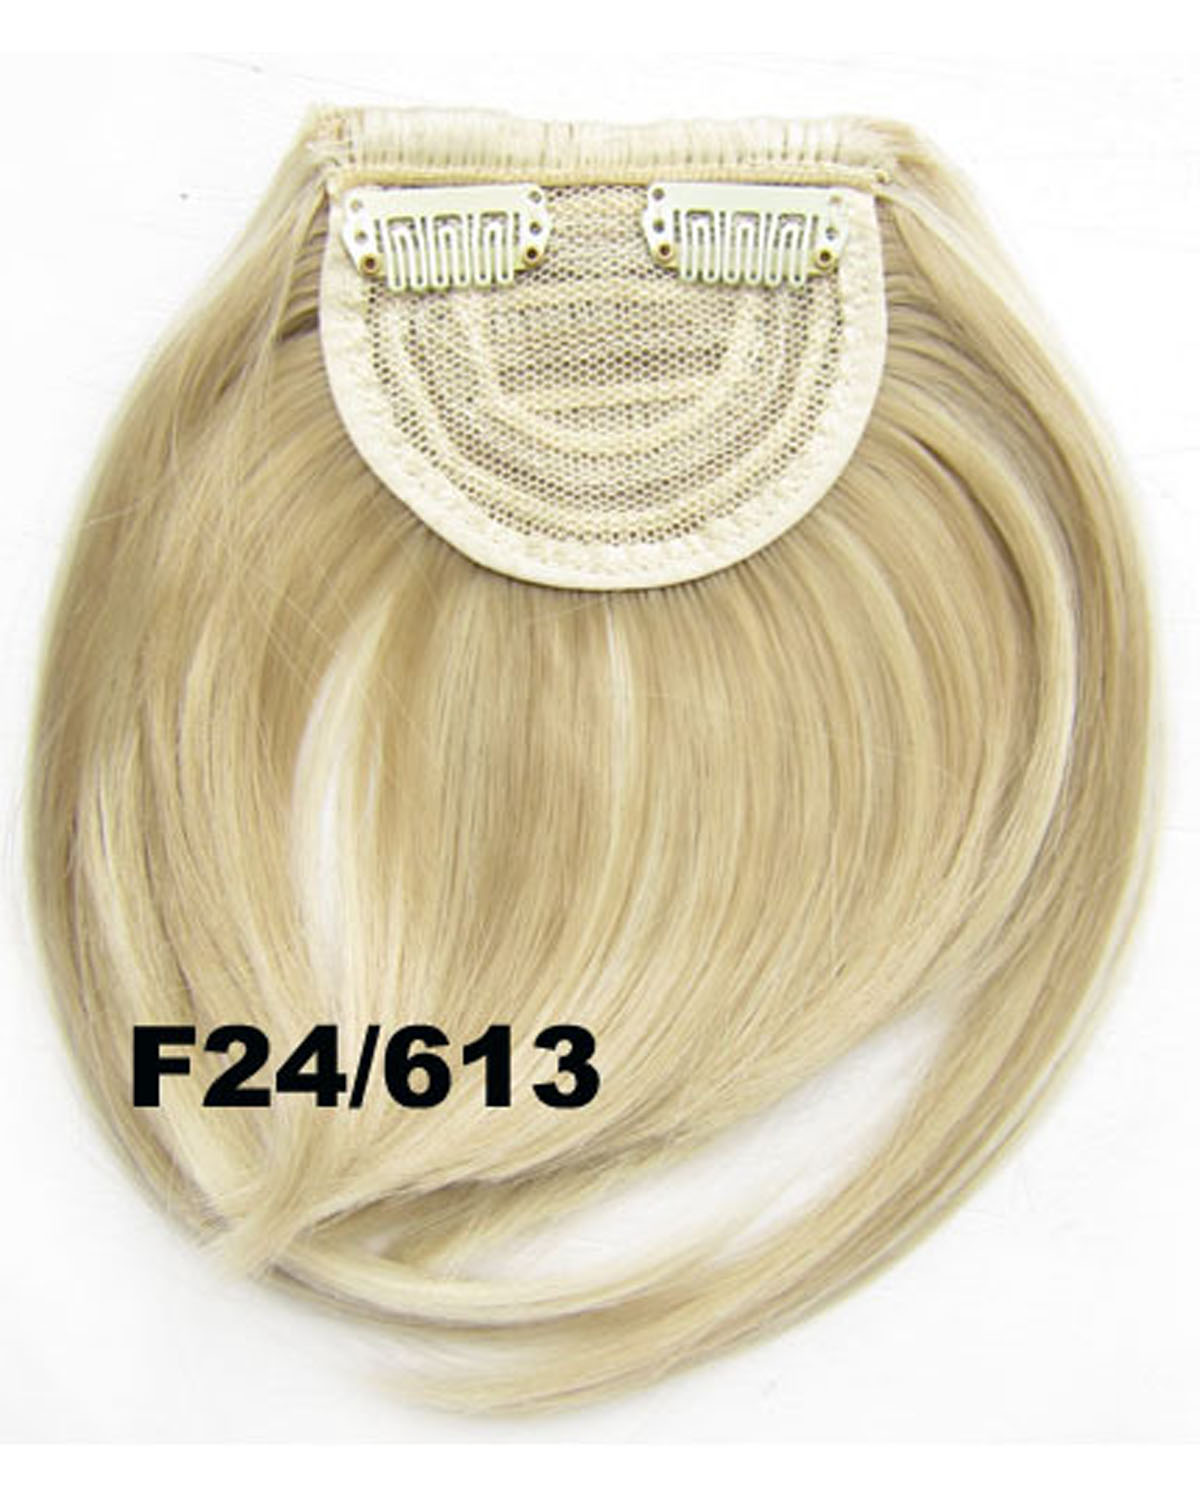 Girls Shining Straight Short Bangs Clip in Synthetic Hair Extension Fringe Bangs Hairpiece F24/613